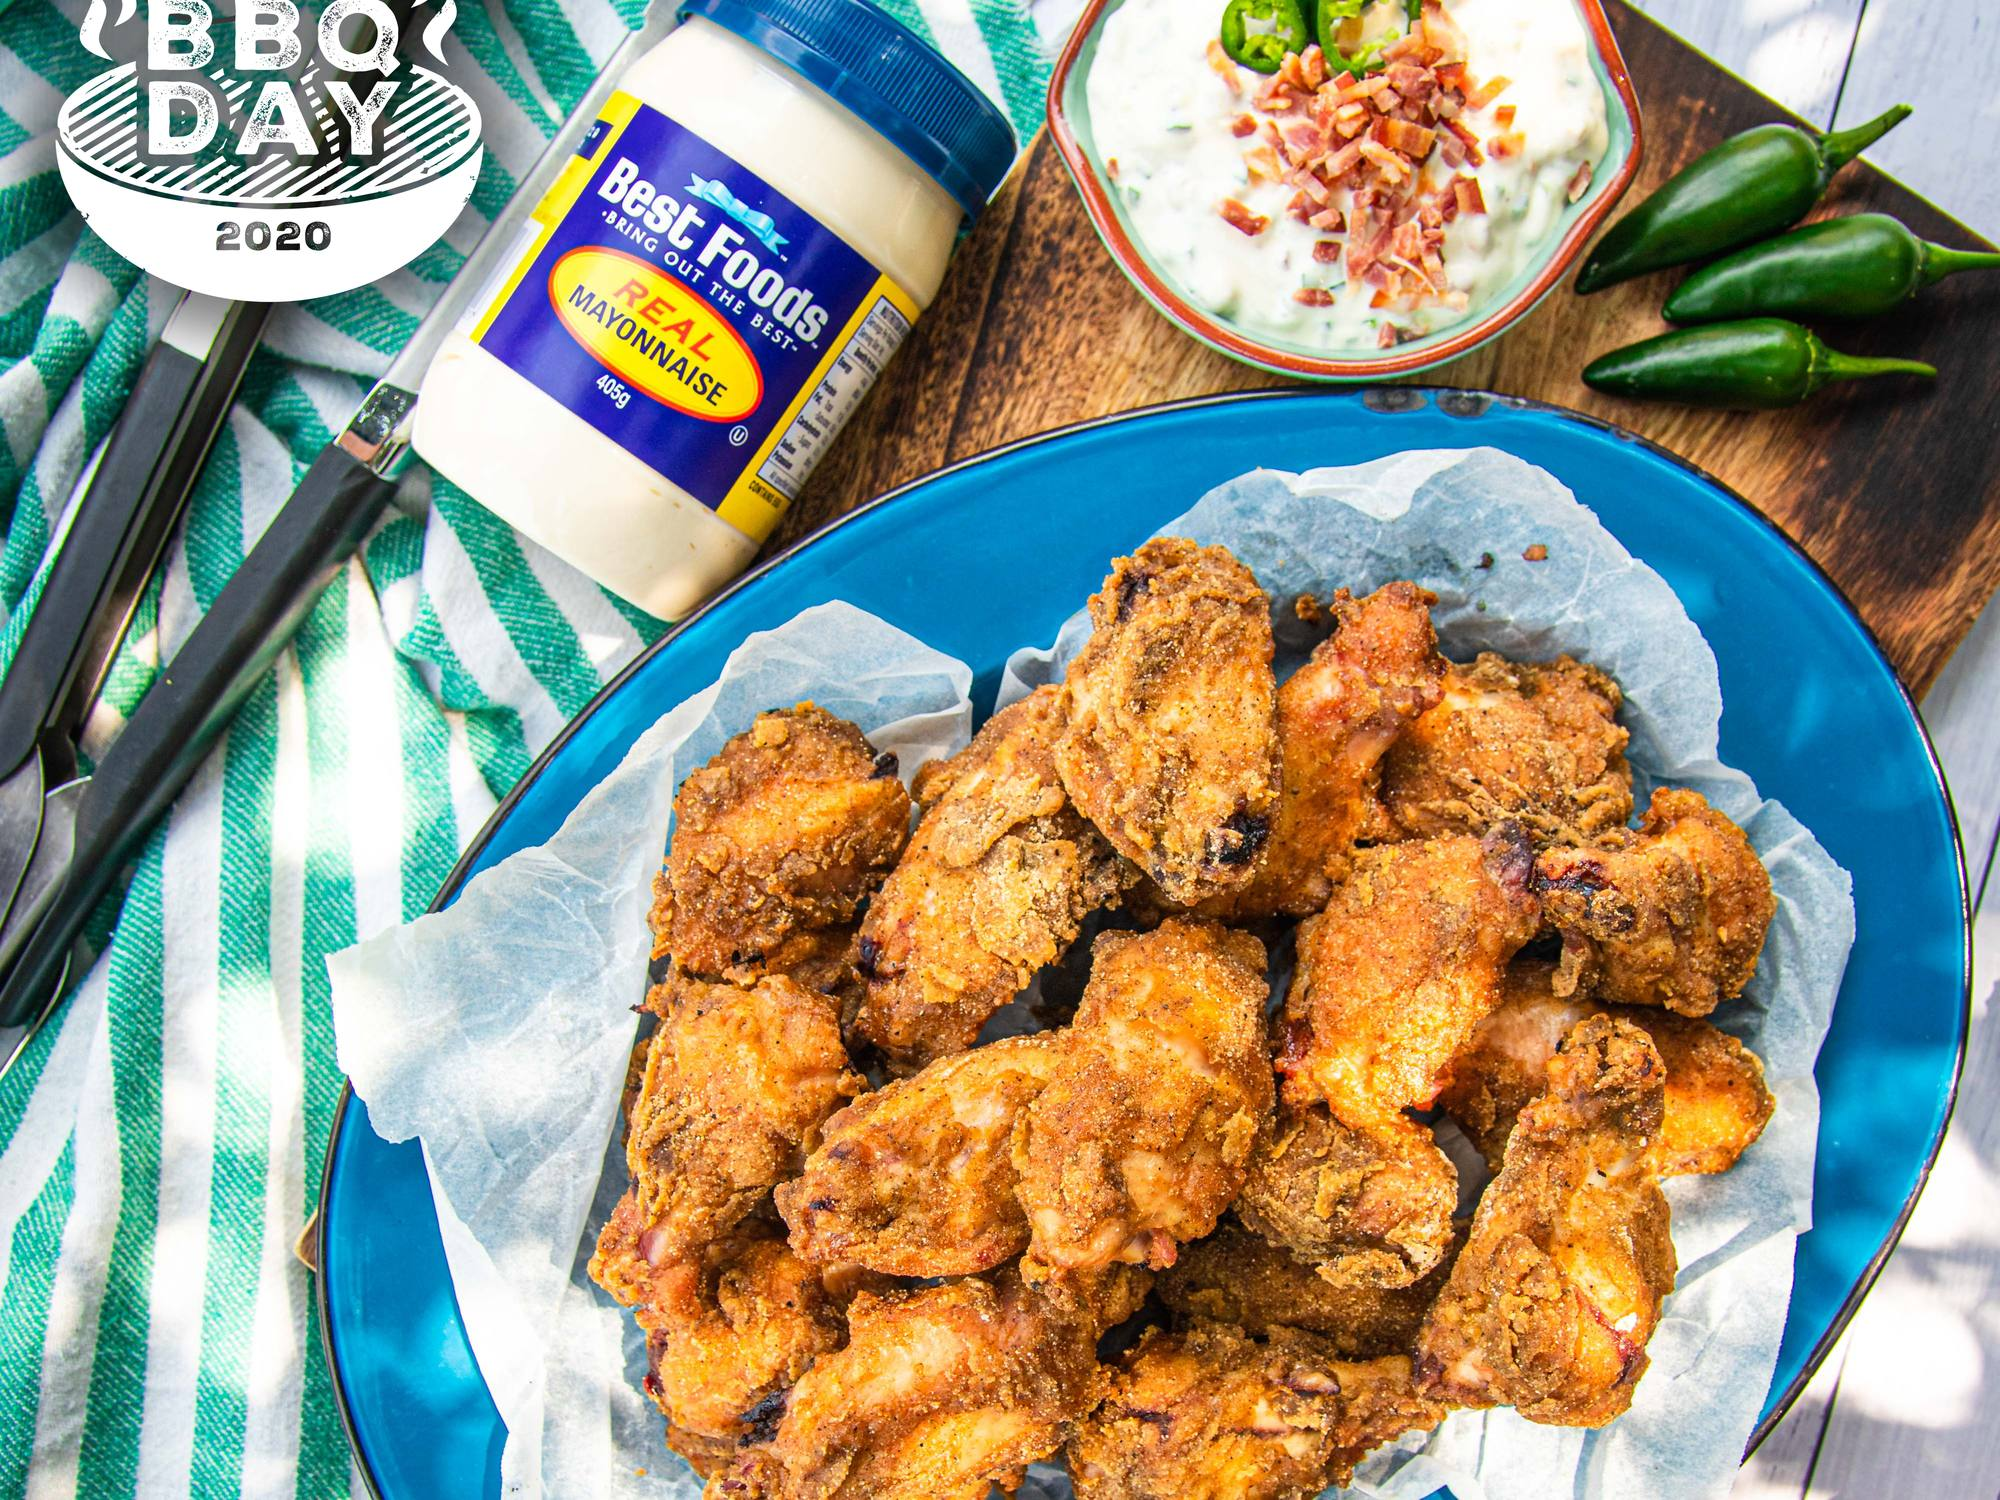 BBQ Kettle Fried Chicken with Bacon and Jalapeno Dip